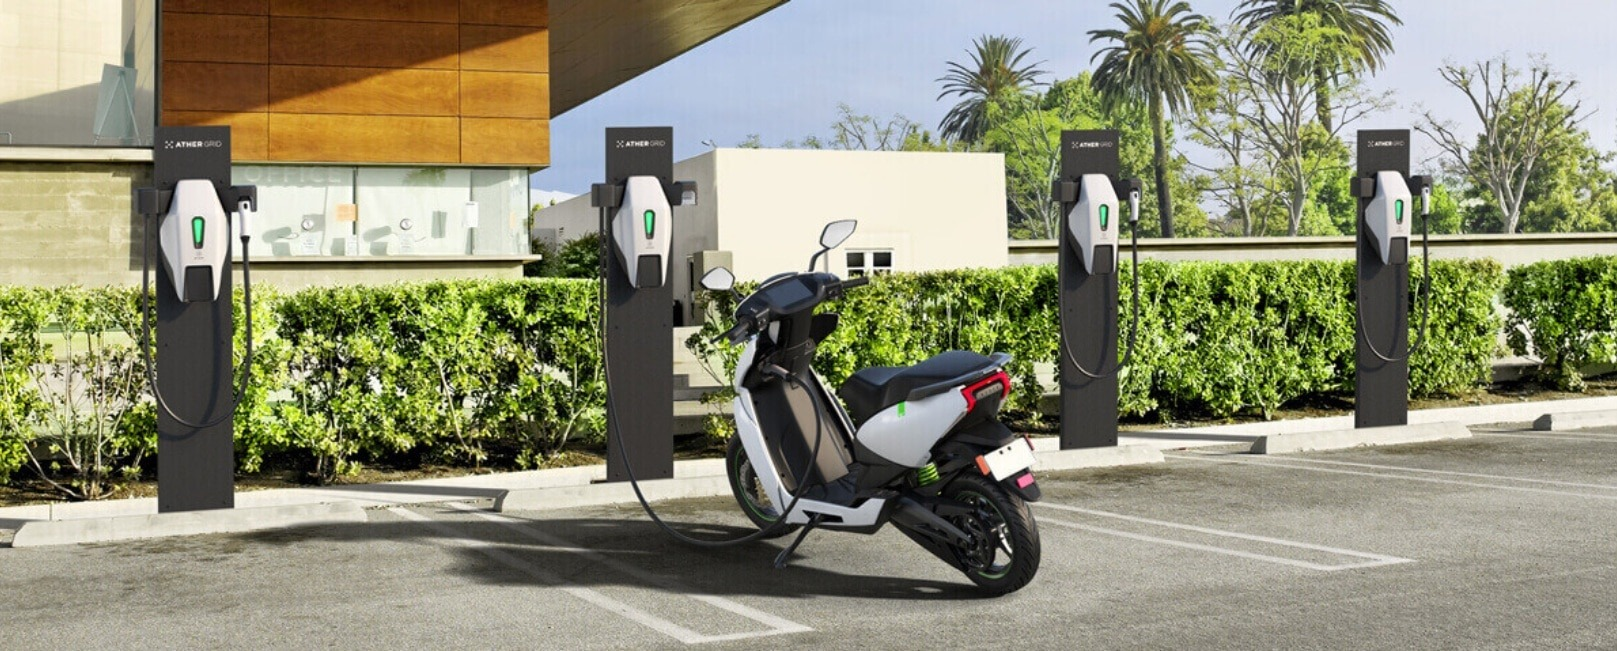 image-Nistha-Tripathi-Article-Ather-Energy-Electric-Scooter-Mediabrief4